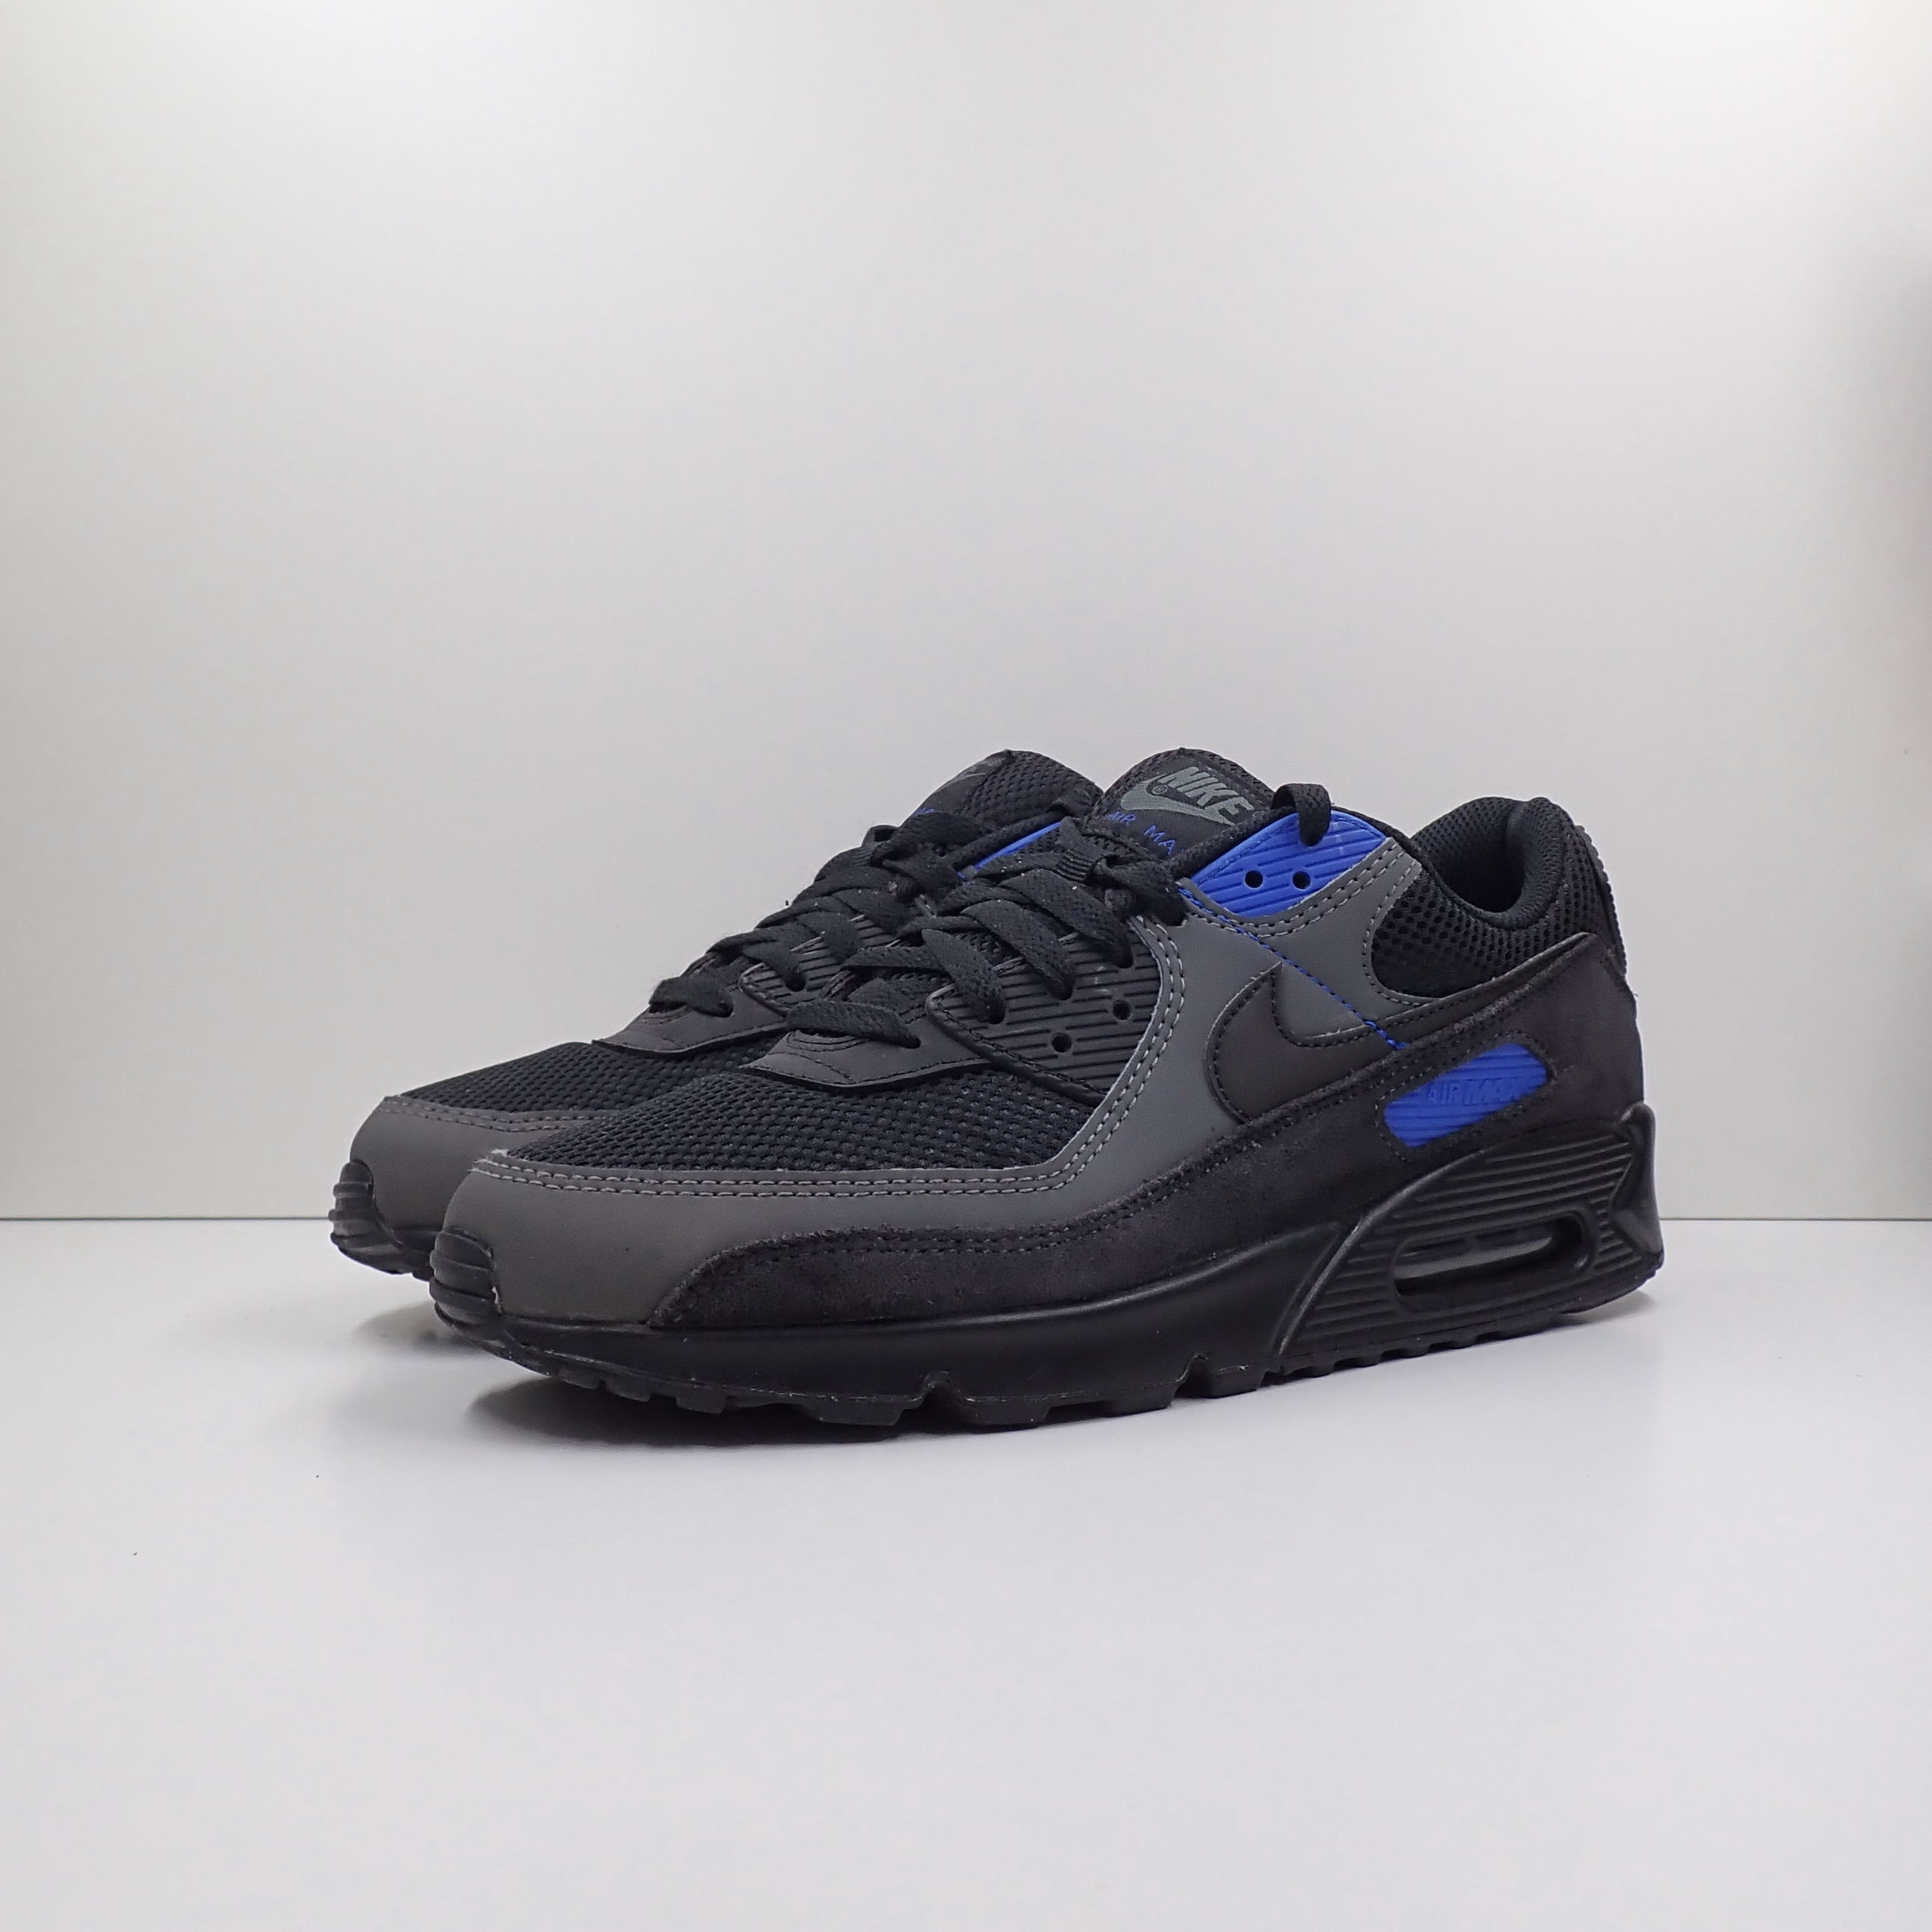 Nike Air Max 90 Black Hyper Royal